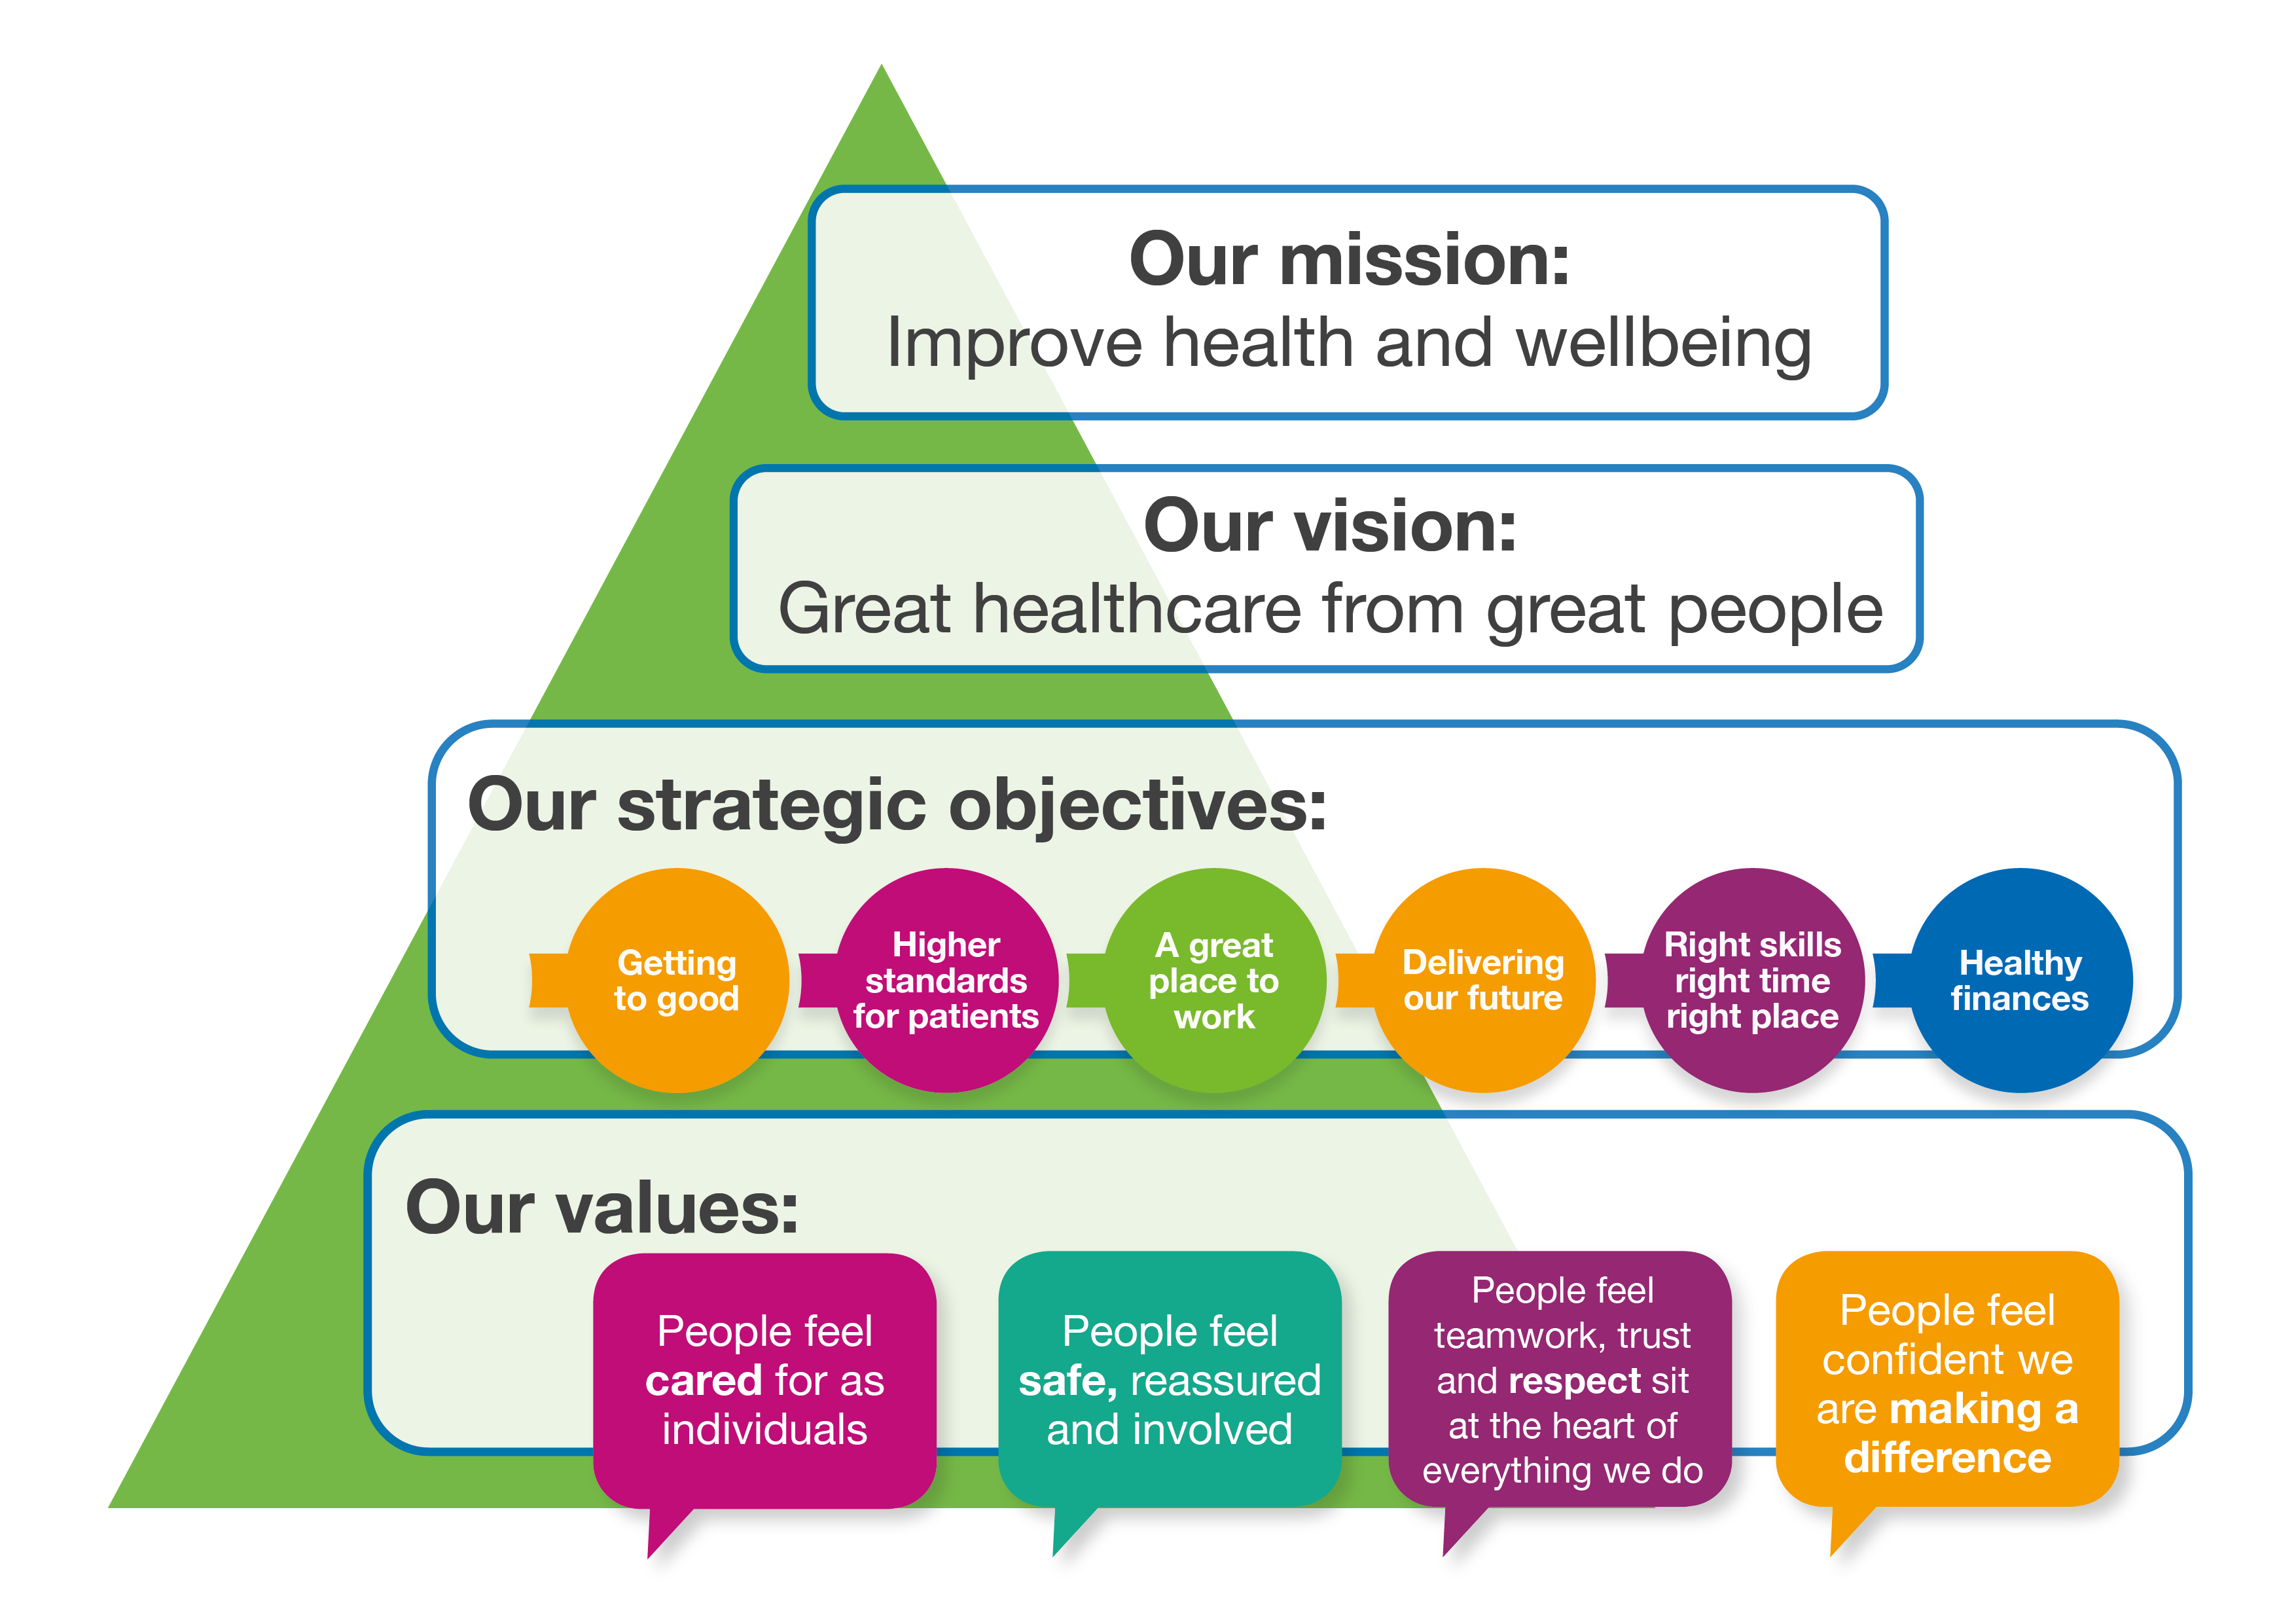 Mission vision values triangle Feb19